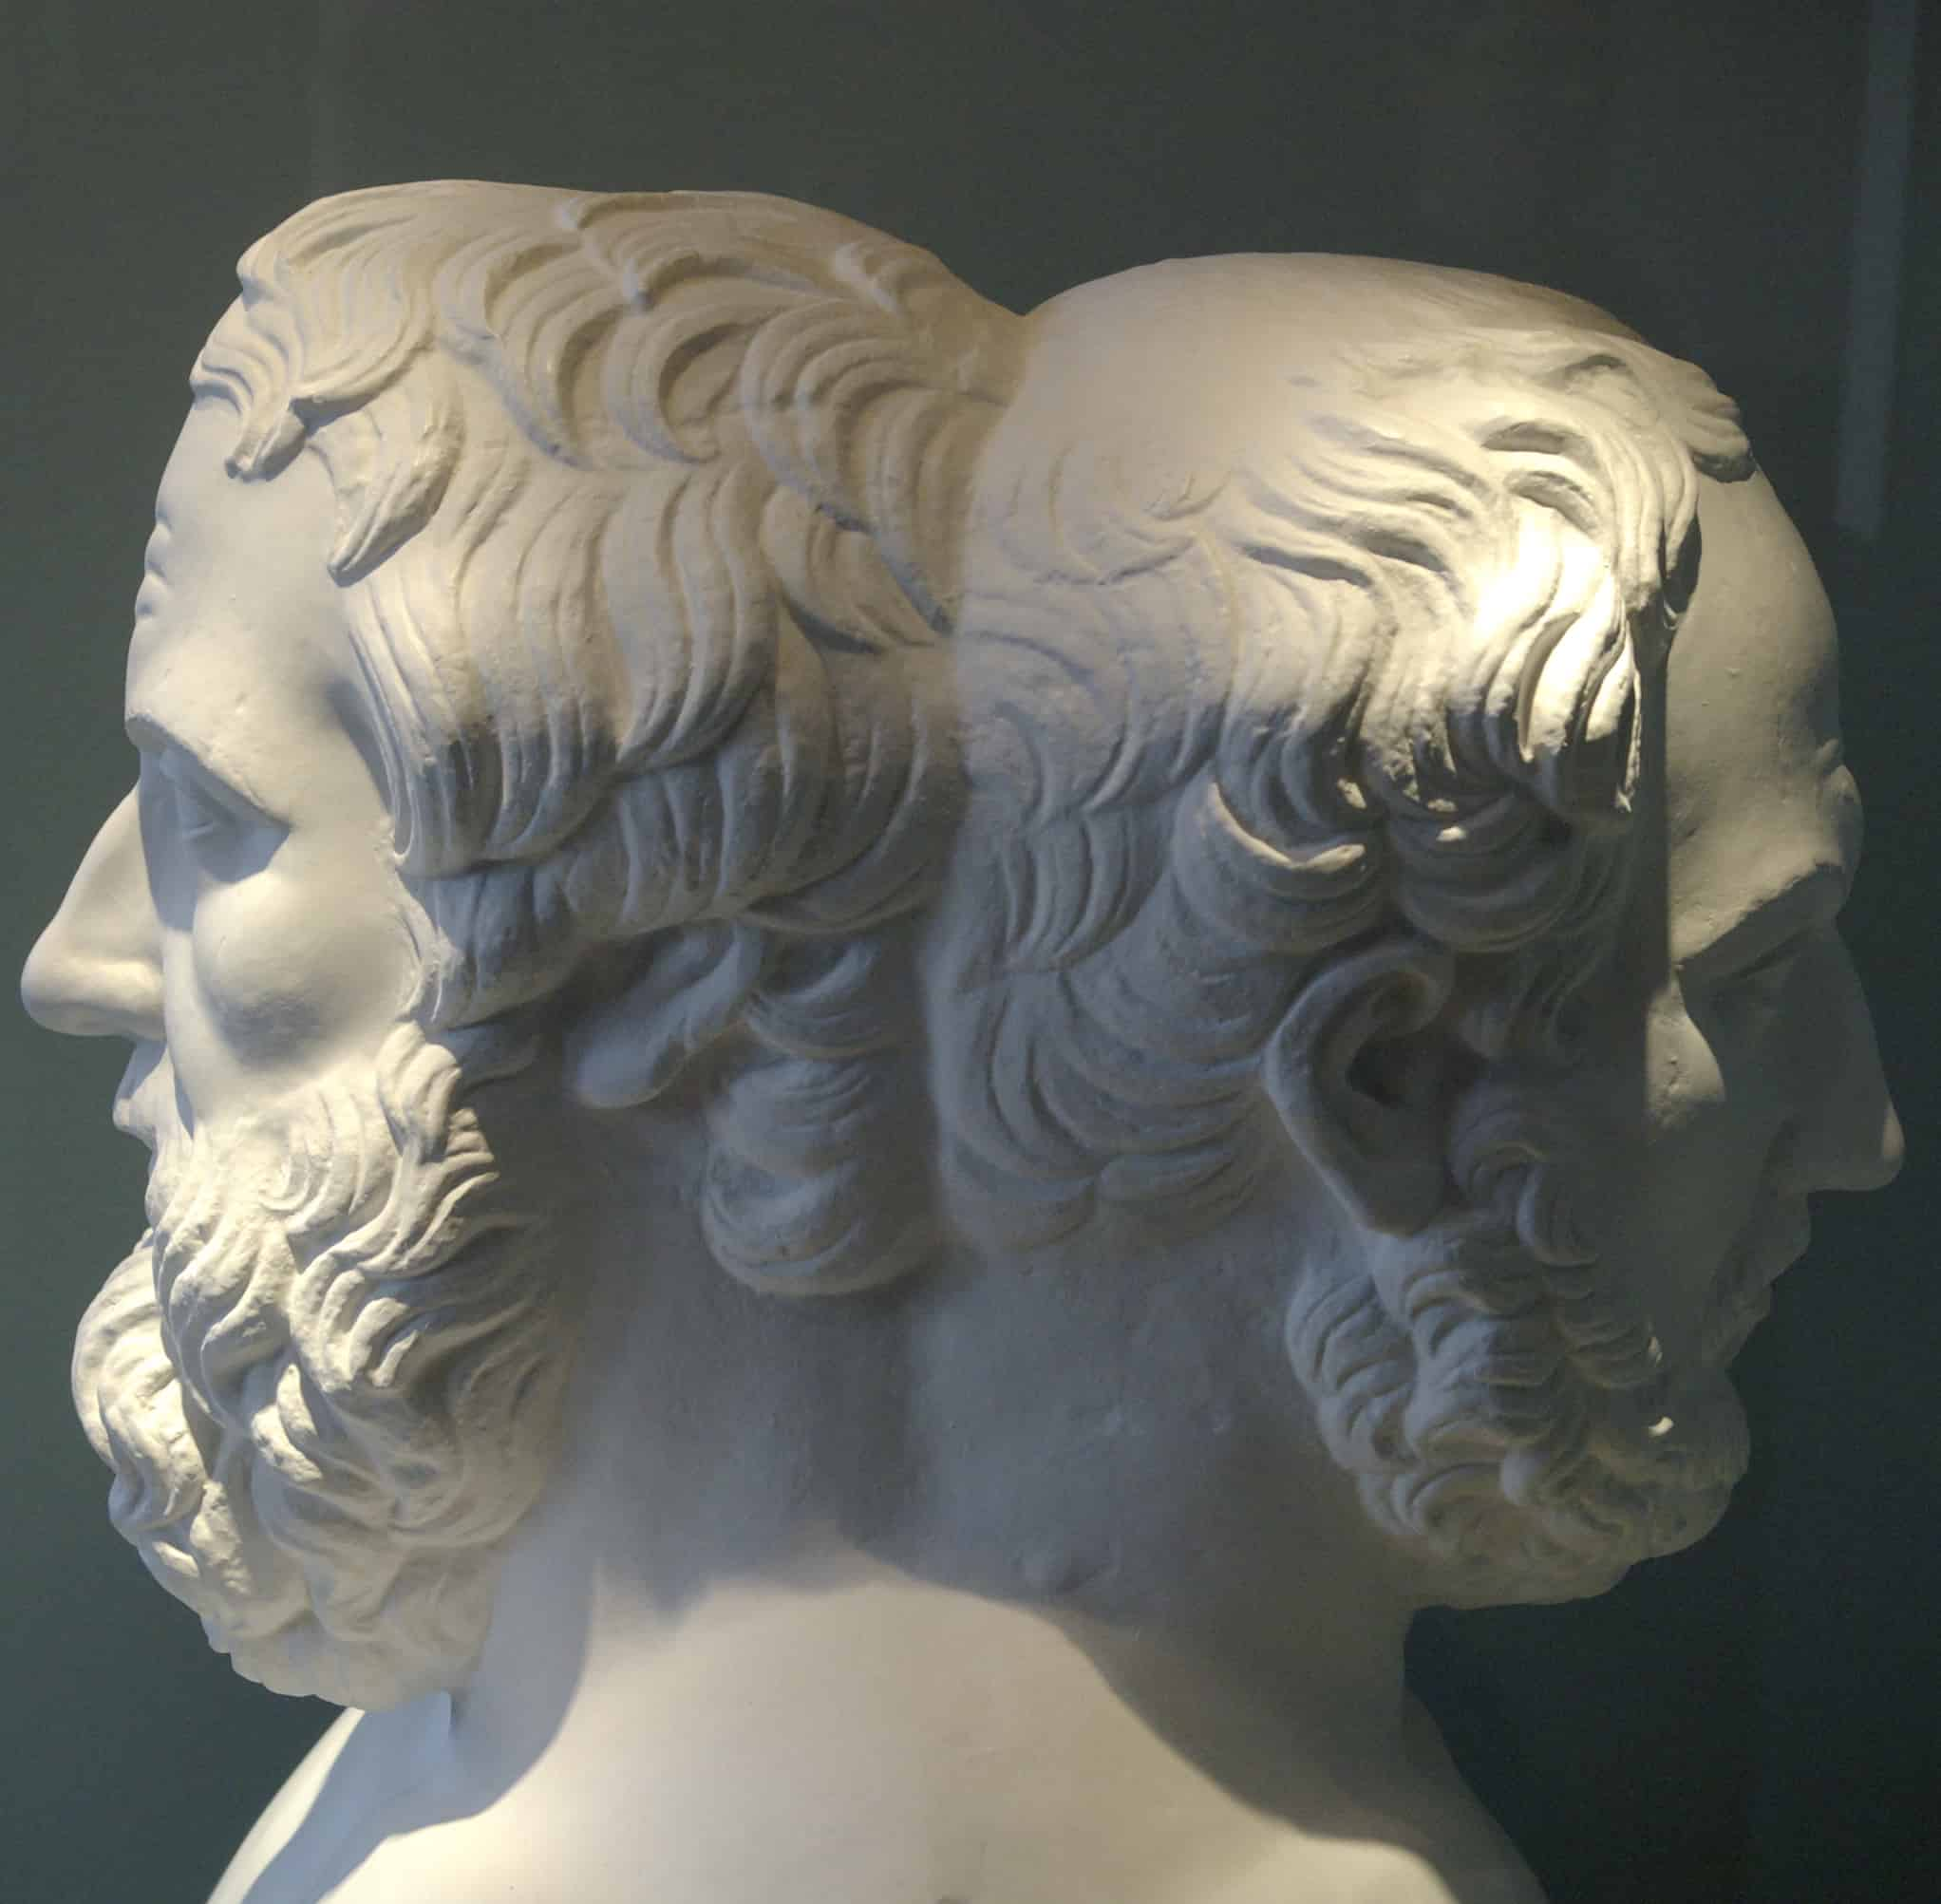 Main image: Janus by David Bleasdale (Creative Commons BY 2.0 licence via Flickr.com)